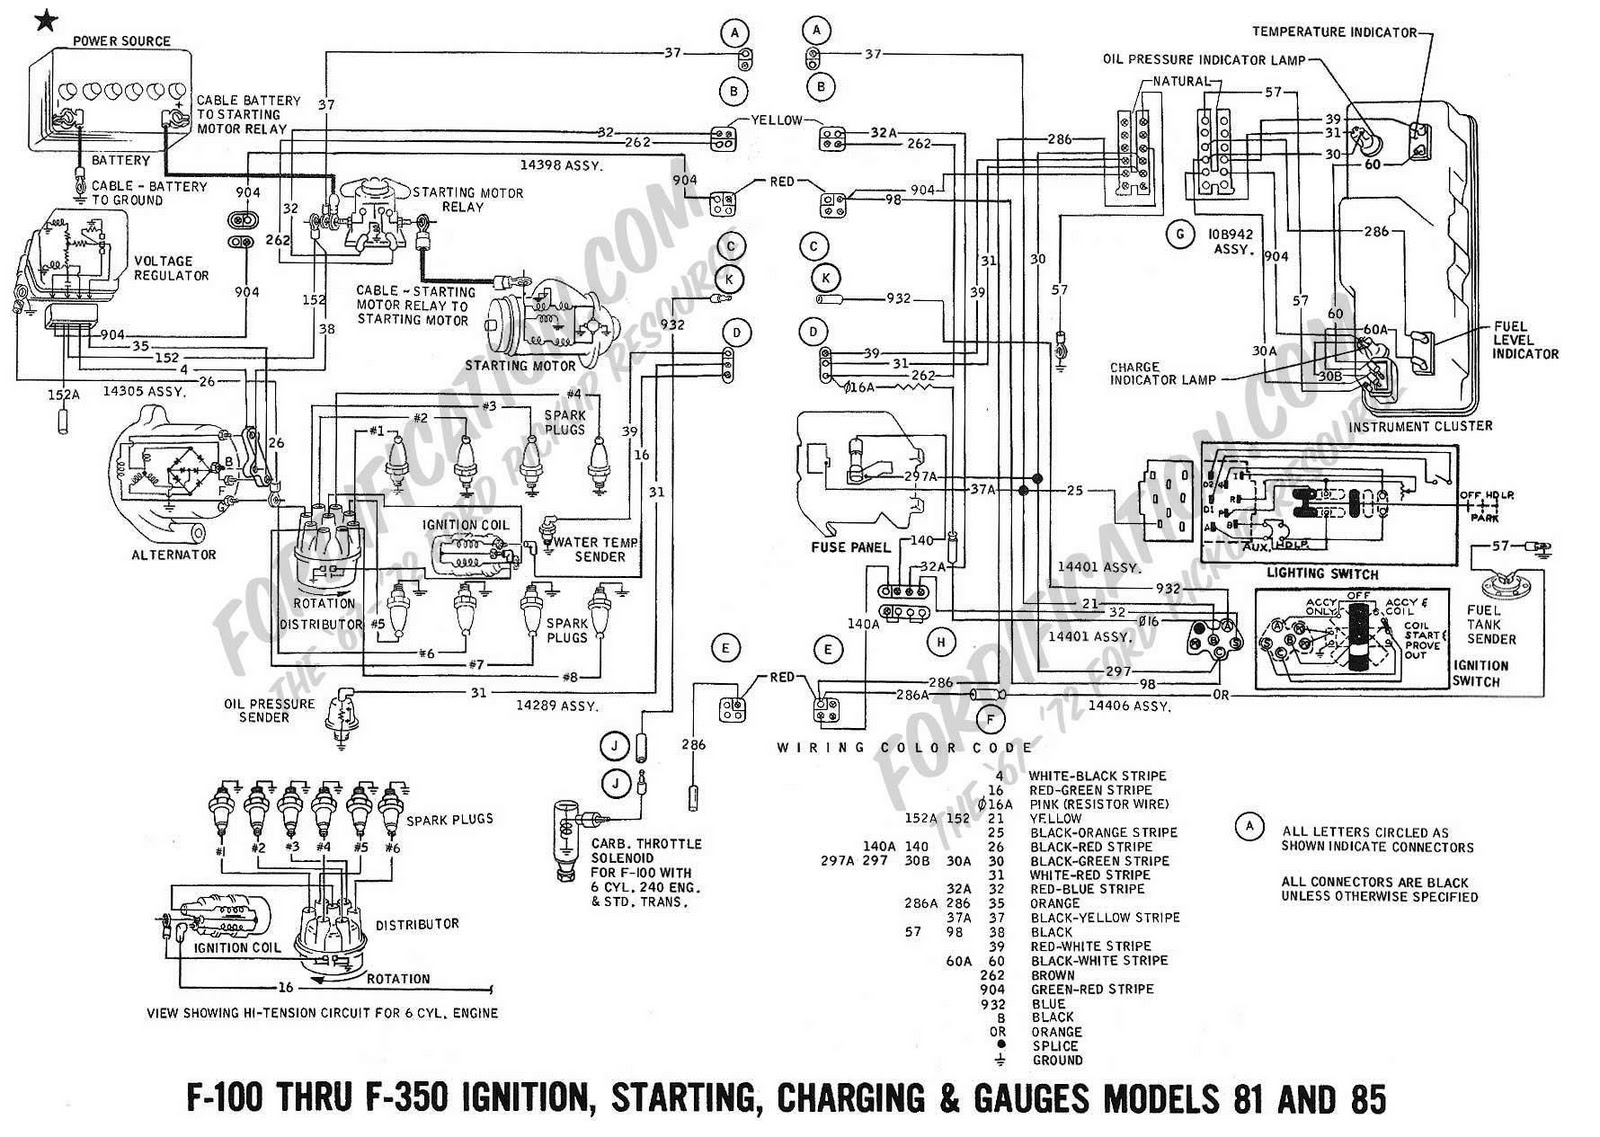 1966 mustang air conditioner diagrama de cableado